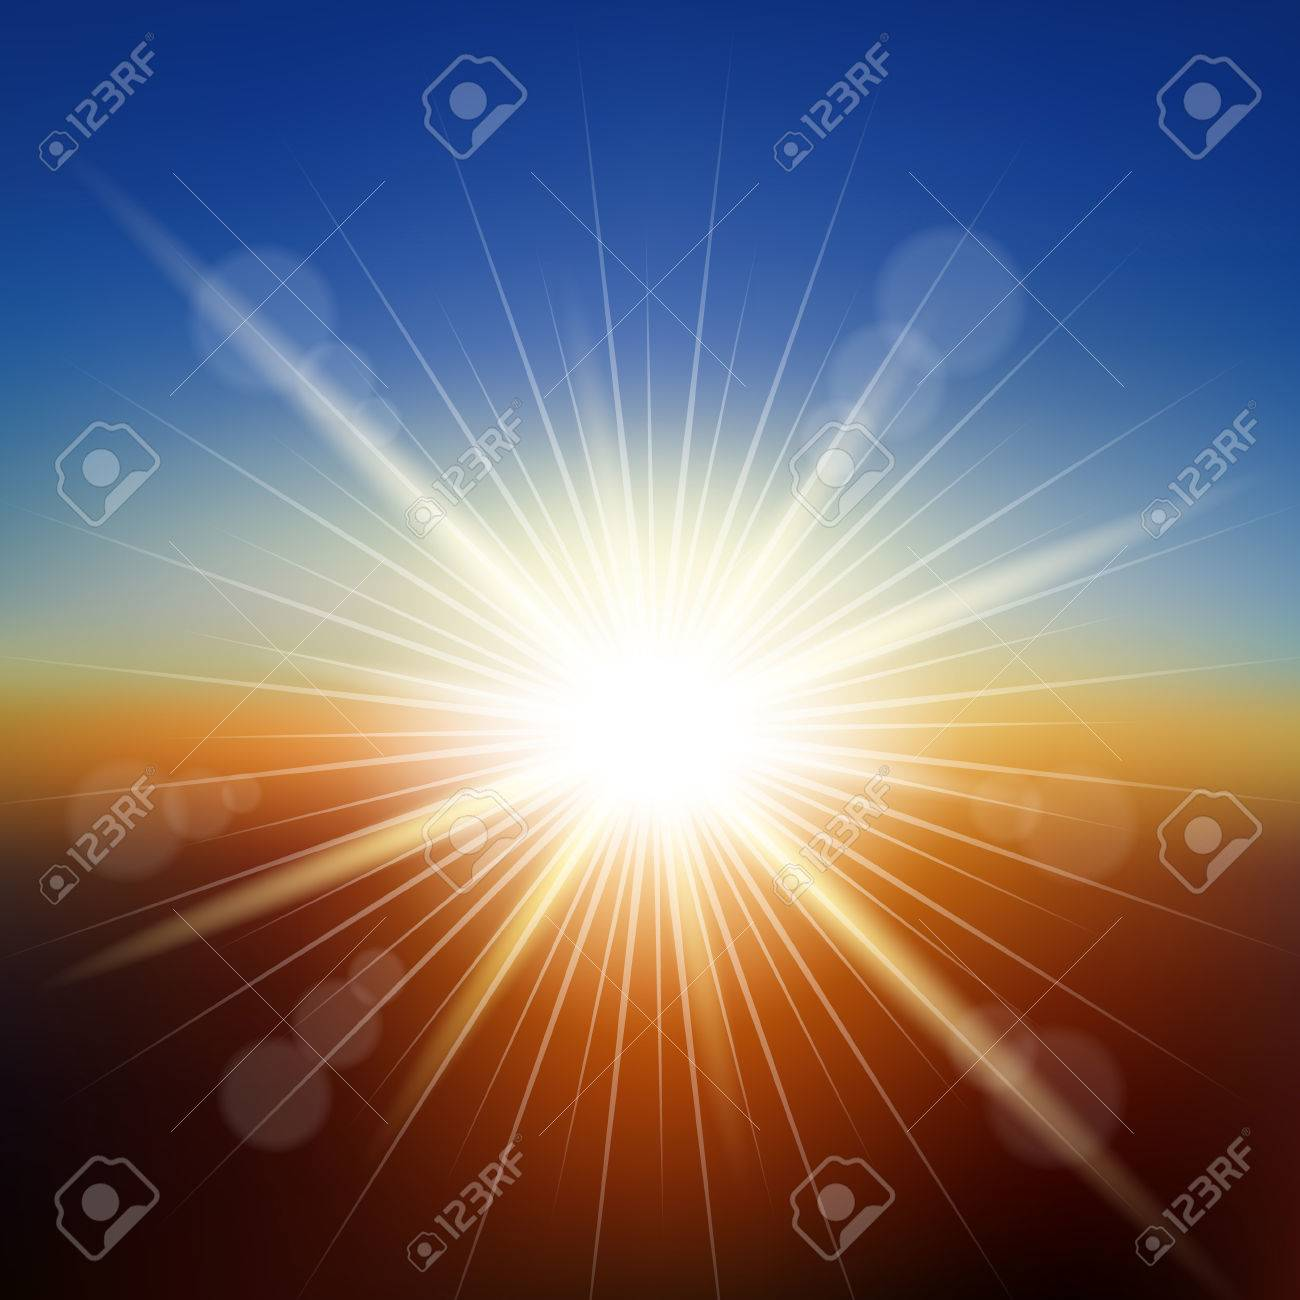 Sunset Background Vector Illustration Saved In Eps 10 File With 1300x1300